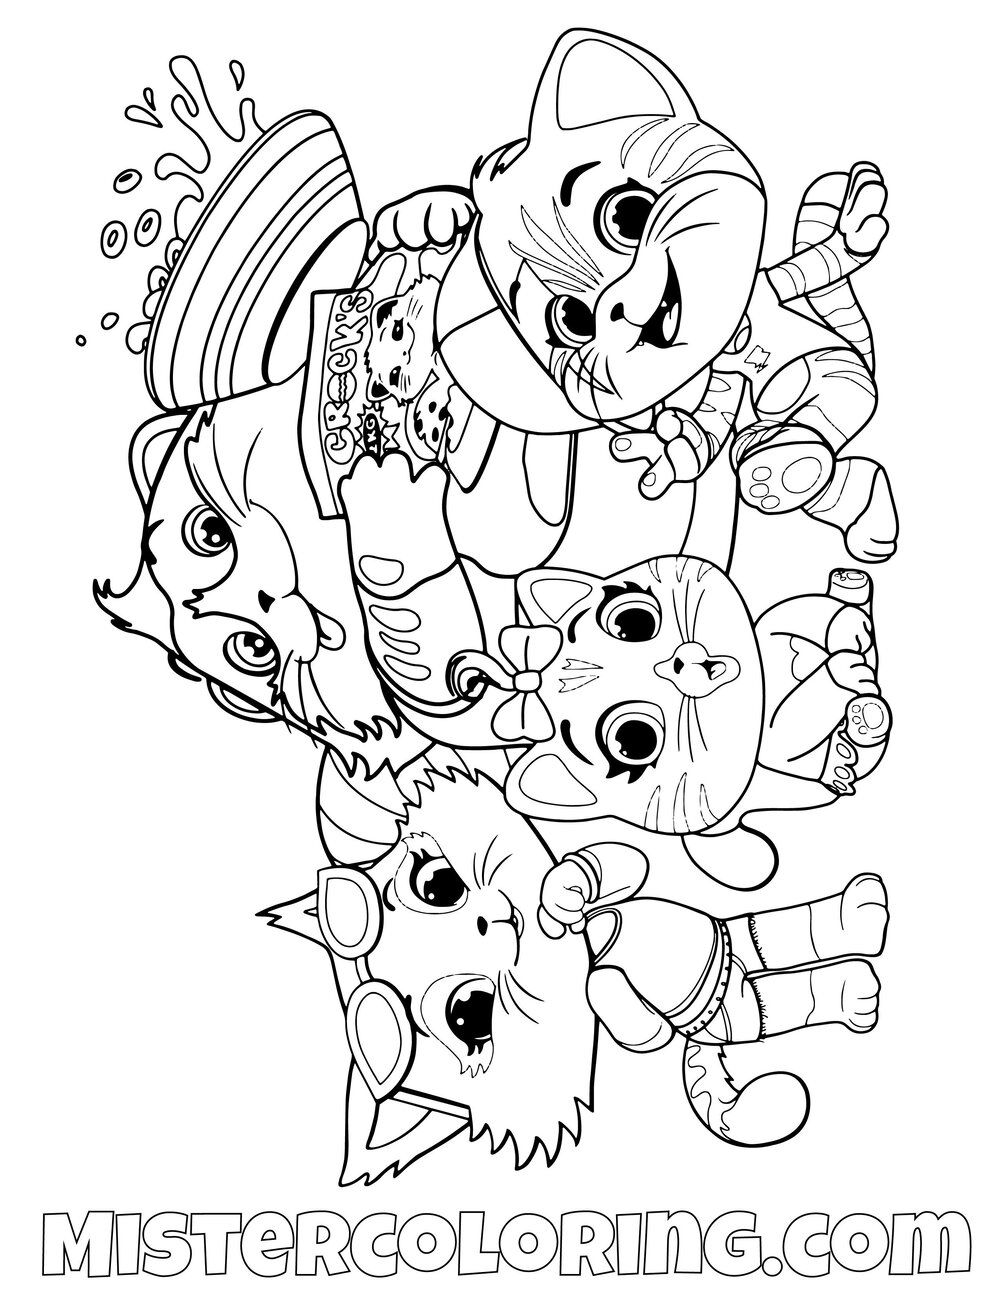 Milady Pilou Meatball And Lampo Posing 44 Cats Coloring Pages For Kids Cat Coloring Page Coloring Pages Coloring Pages For Kids